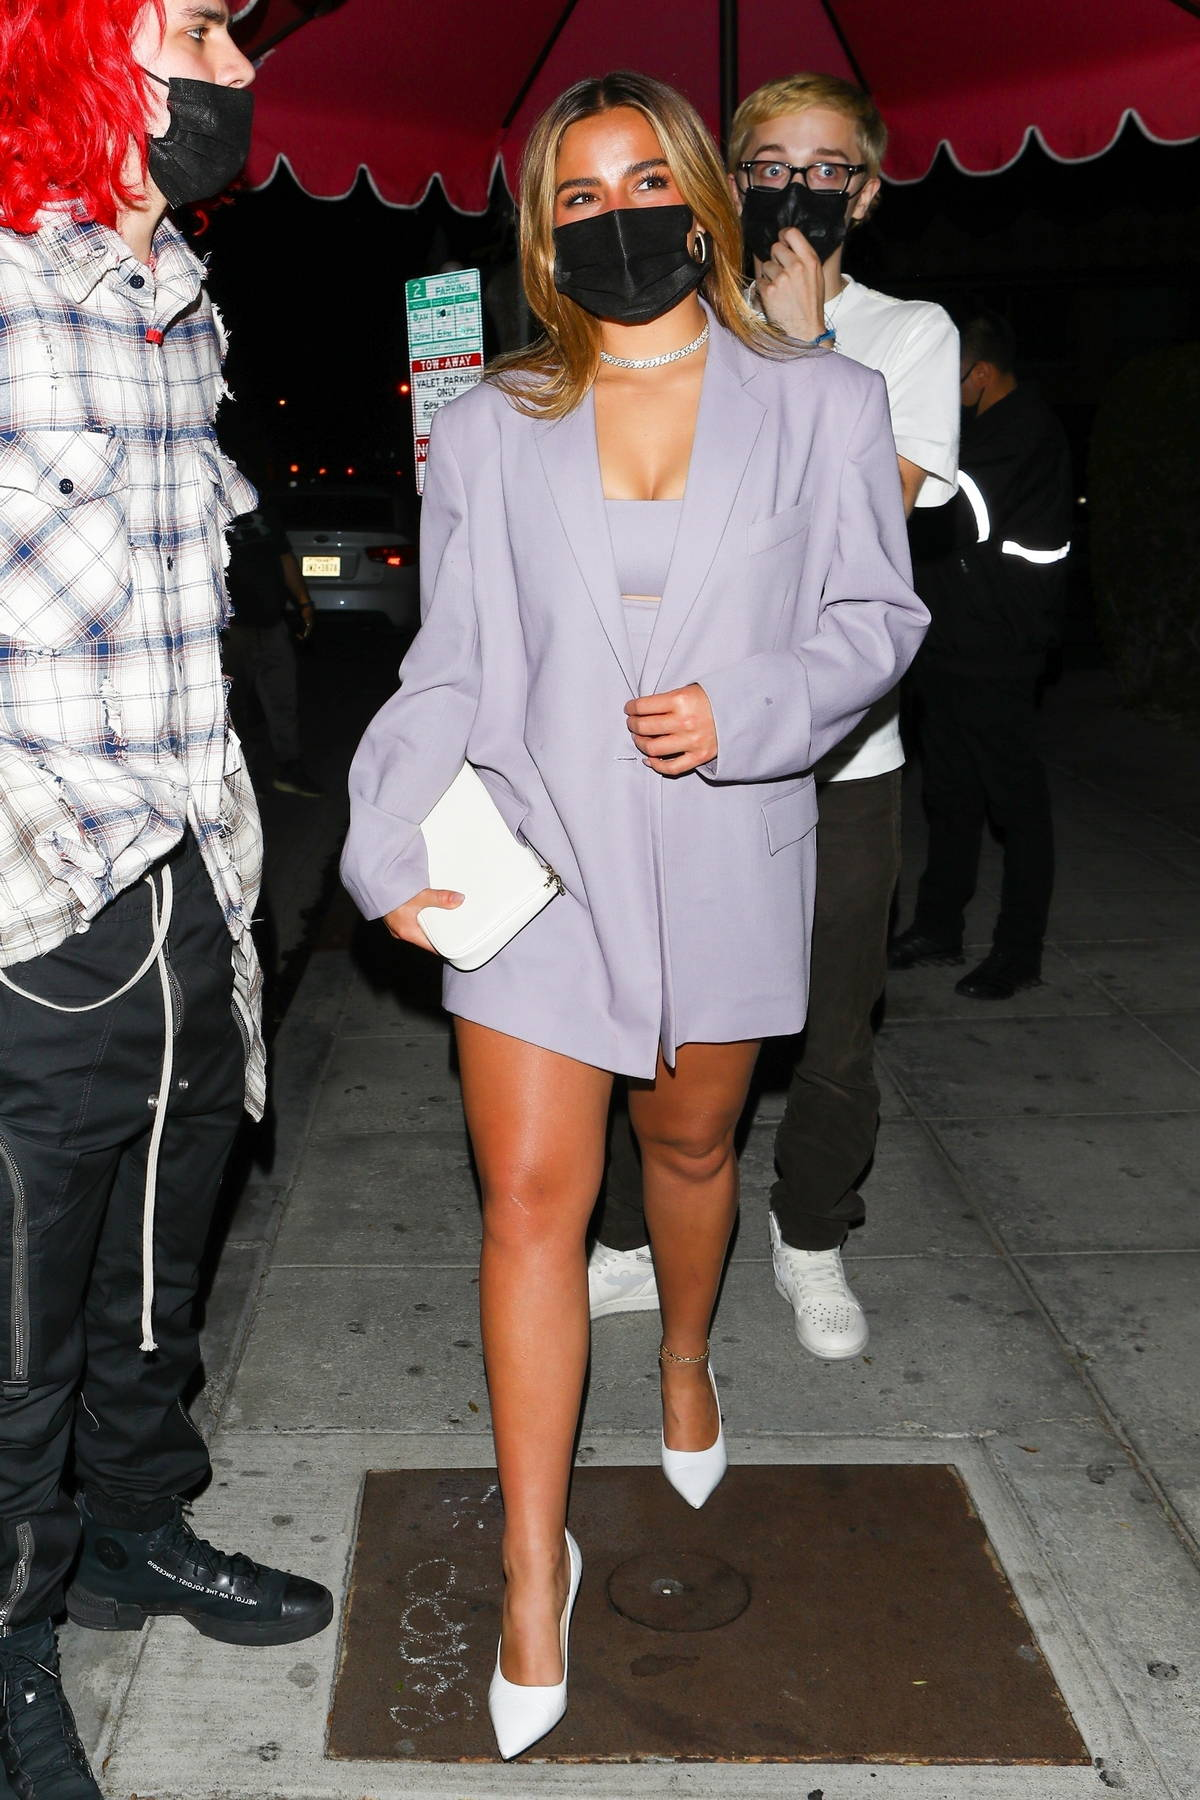 Addison Rae looks fab in lavender while attending Charli D'Amelio's birthday dinner at Delilah in West Hollywood, California